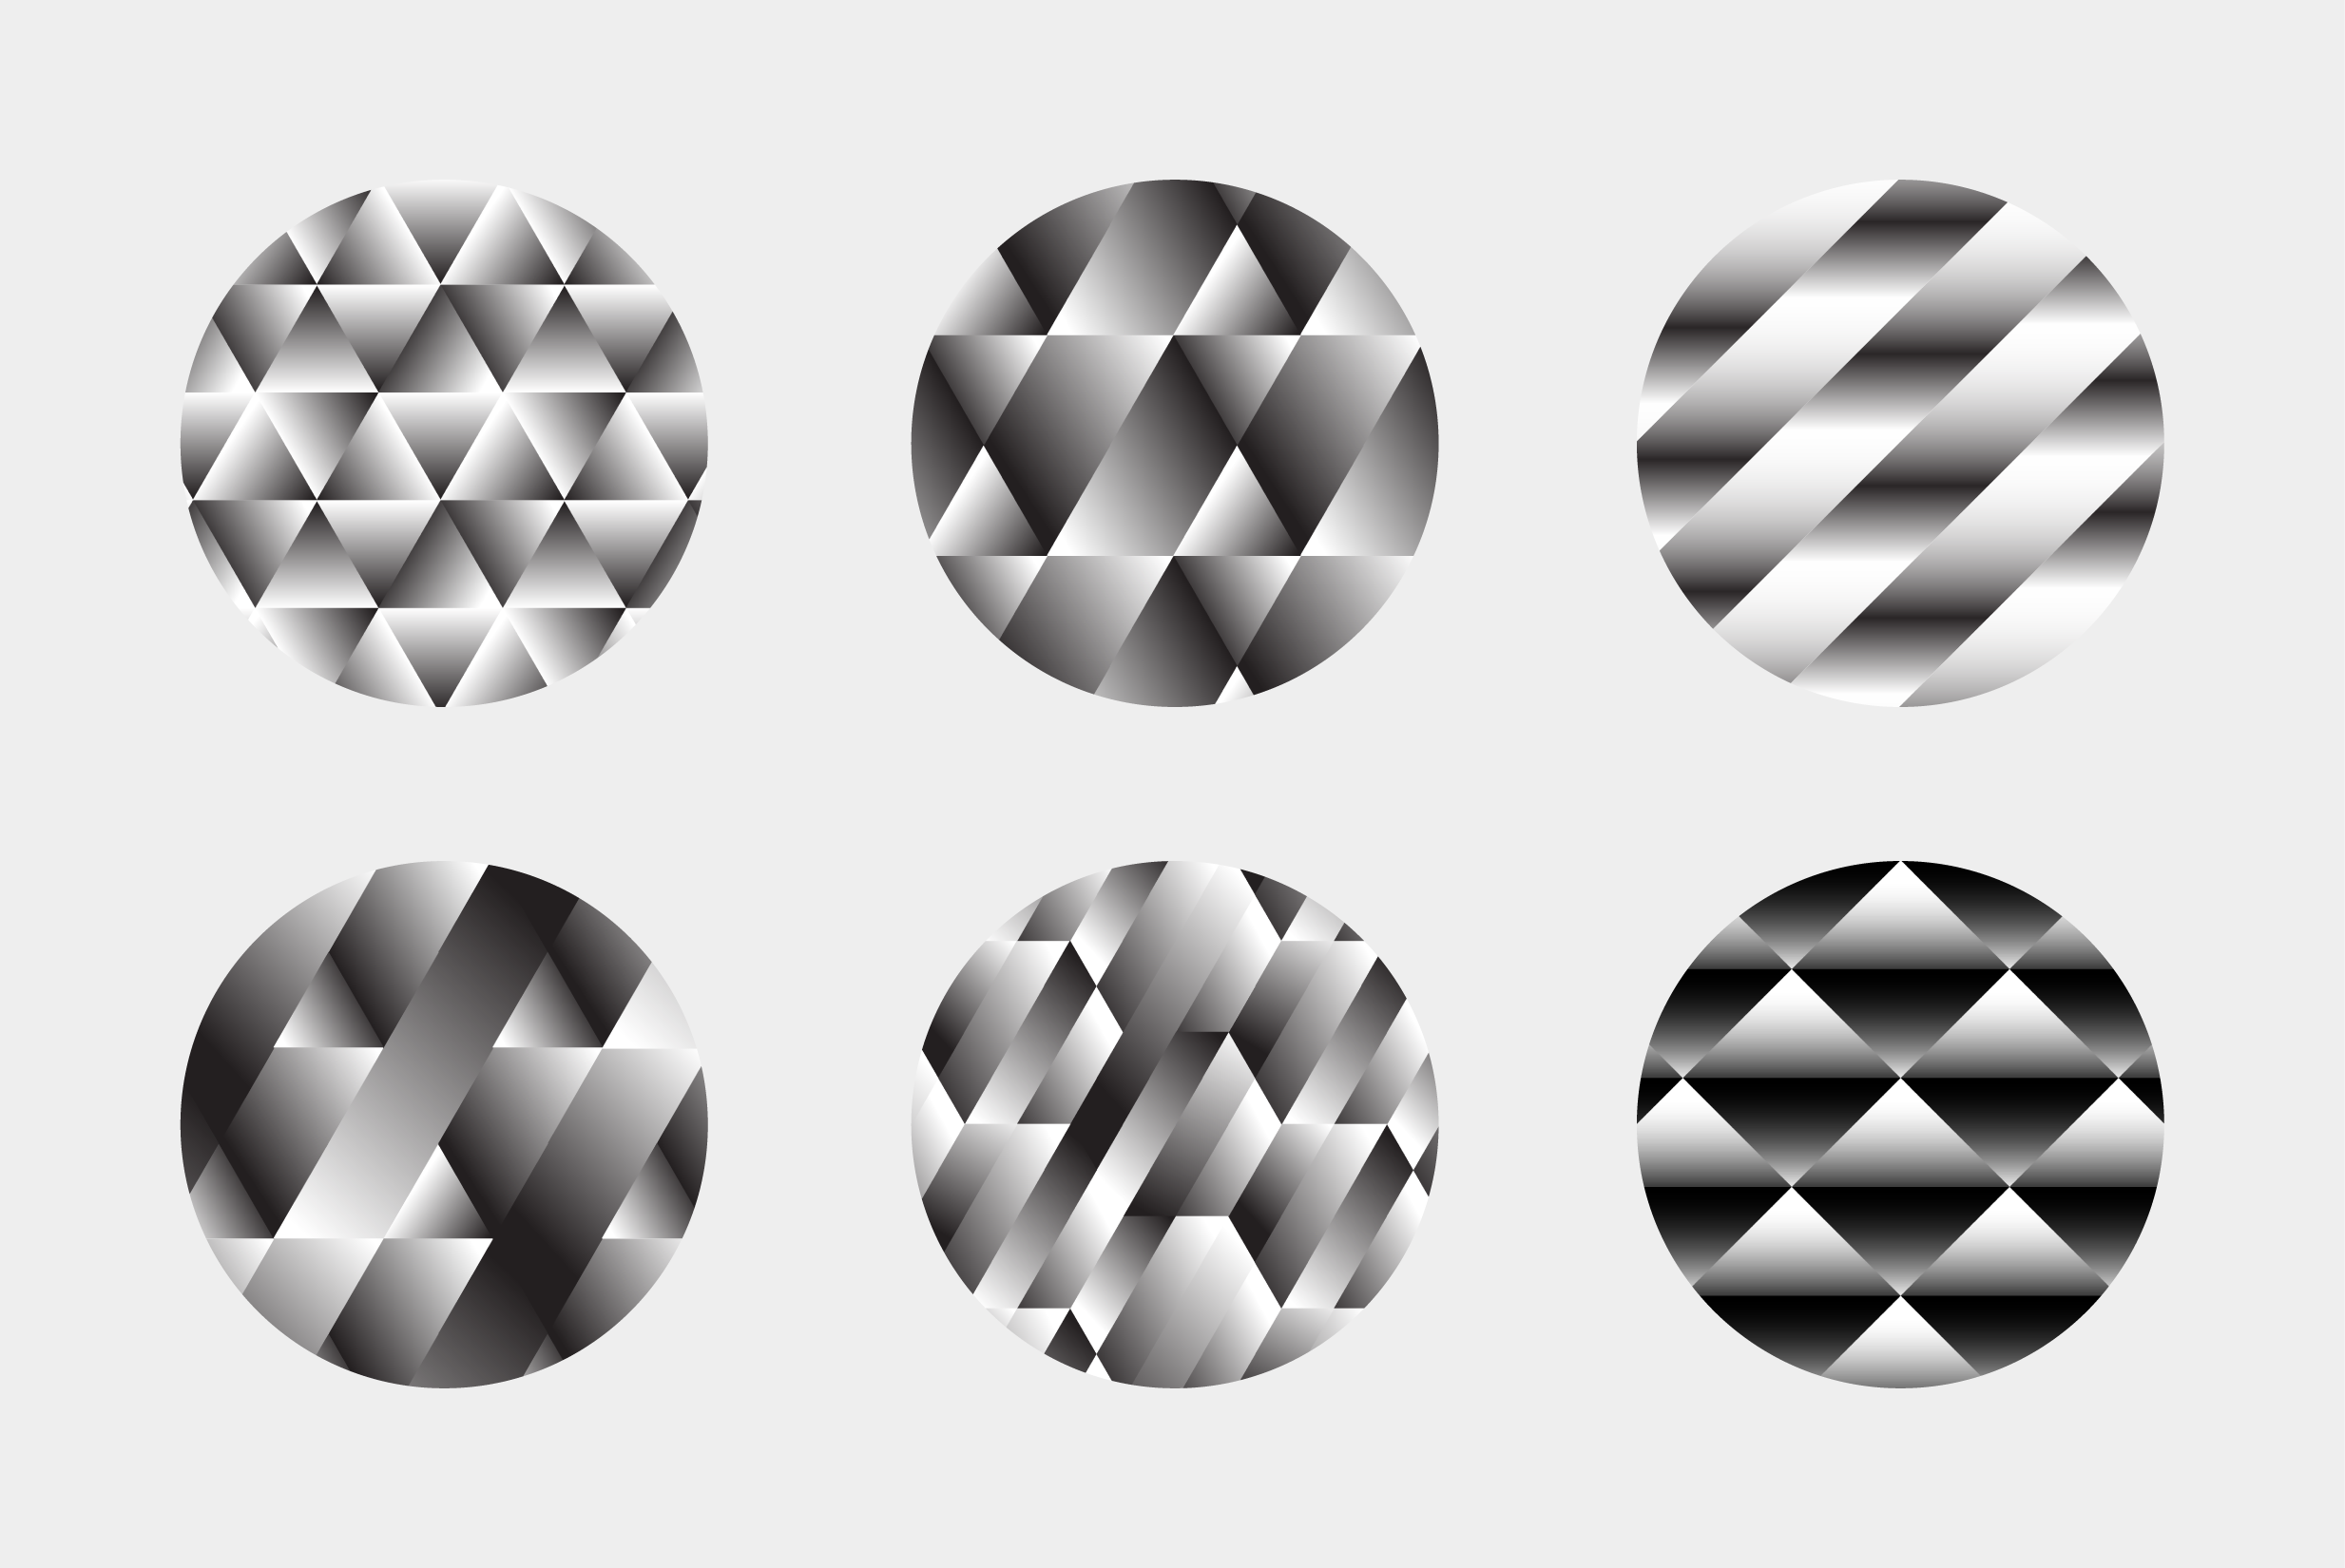 black and white gradient tile patterns on 6 round samples